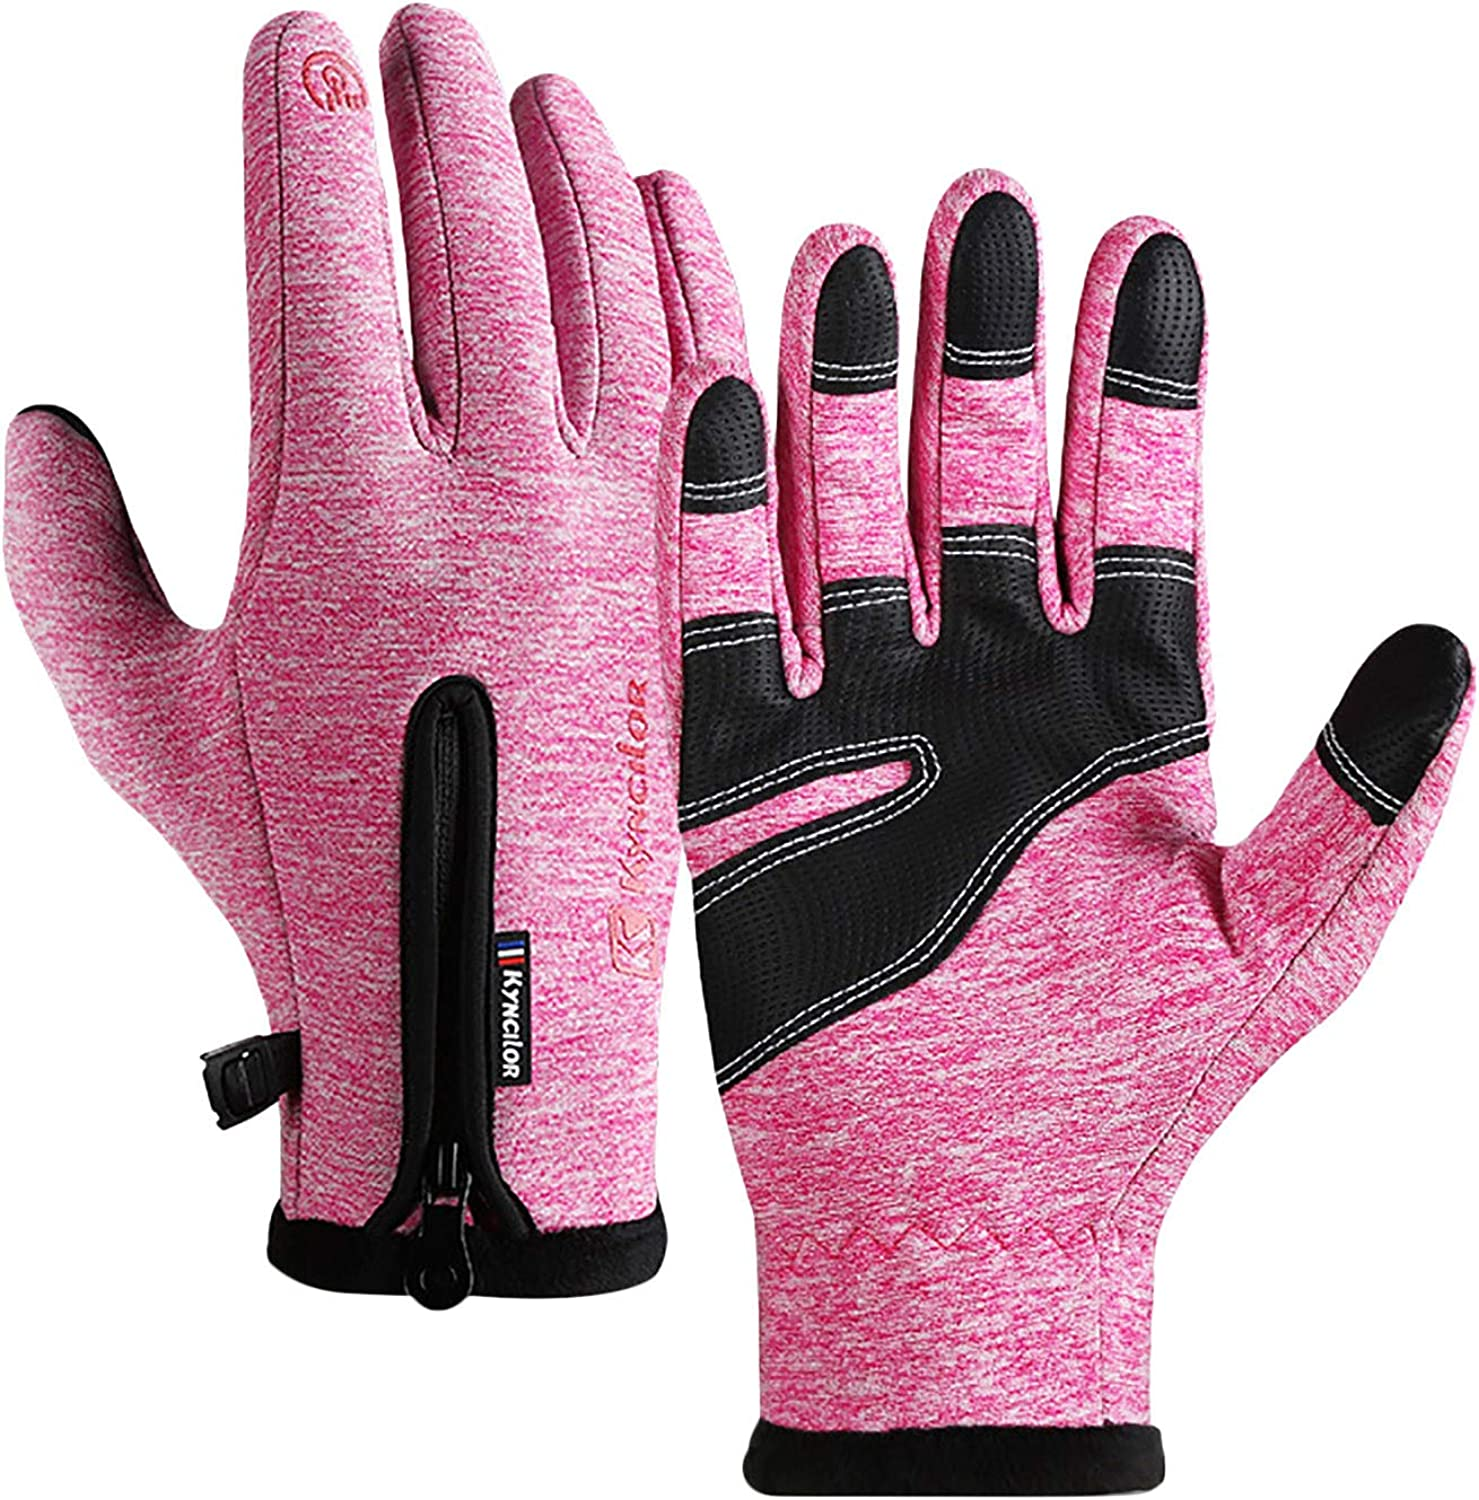 Jan STORE Winter Gloves for Men and Women Waterproof Touch Screen Glove Cycling